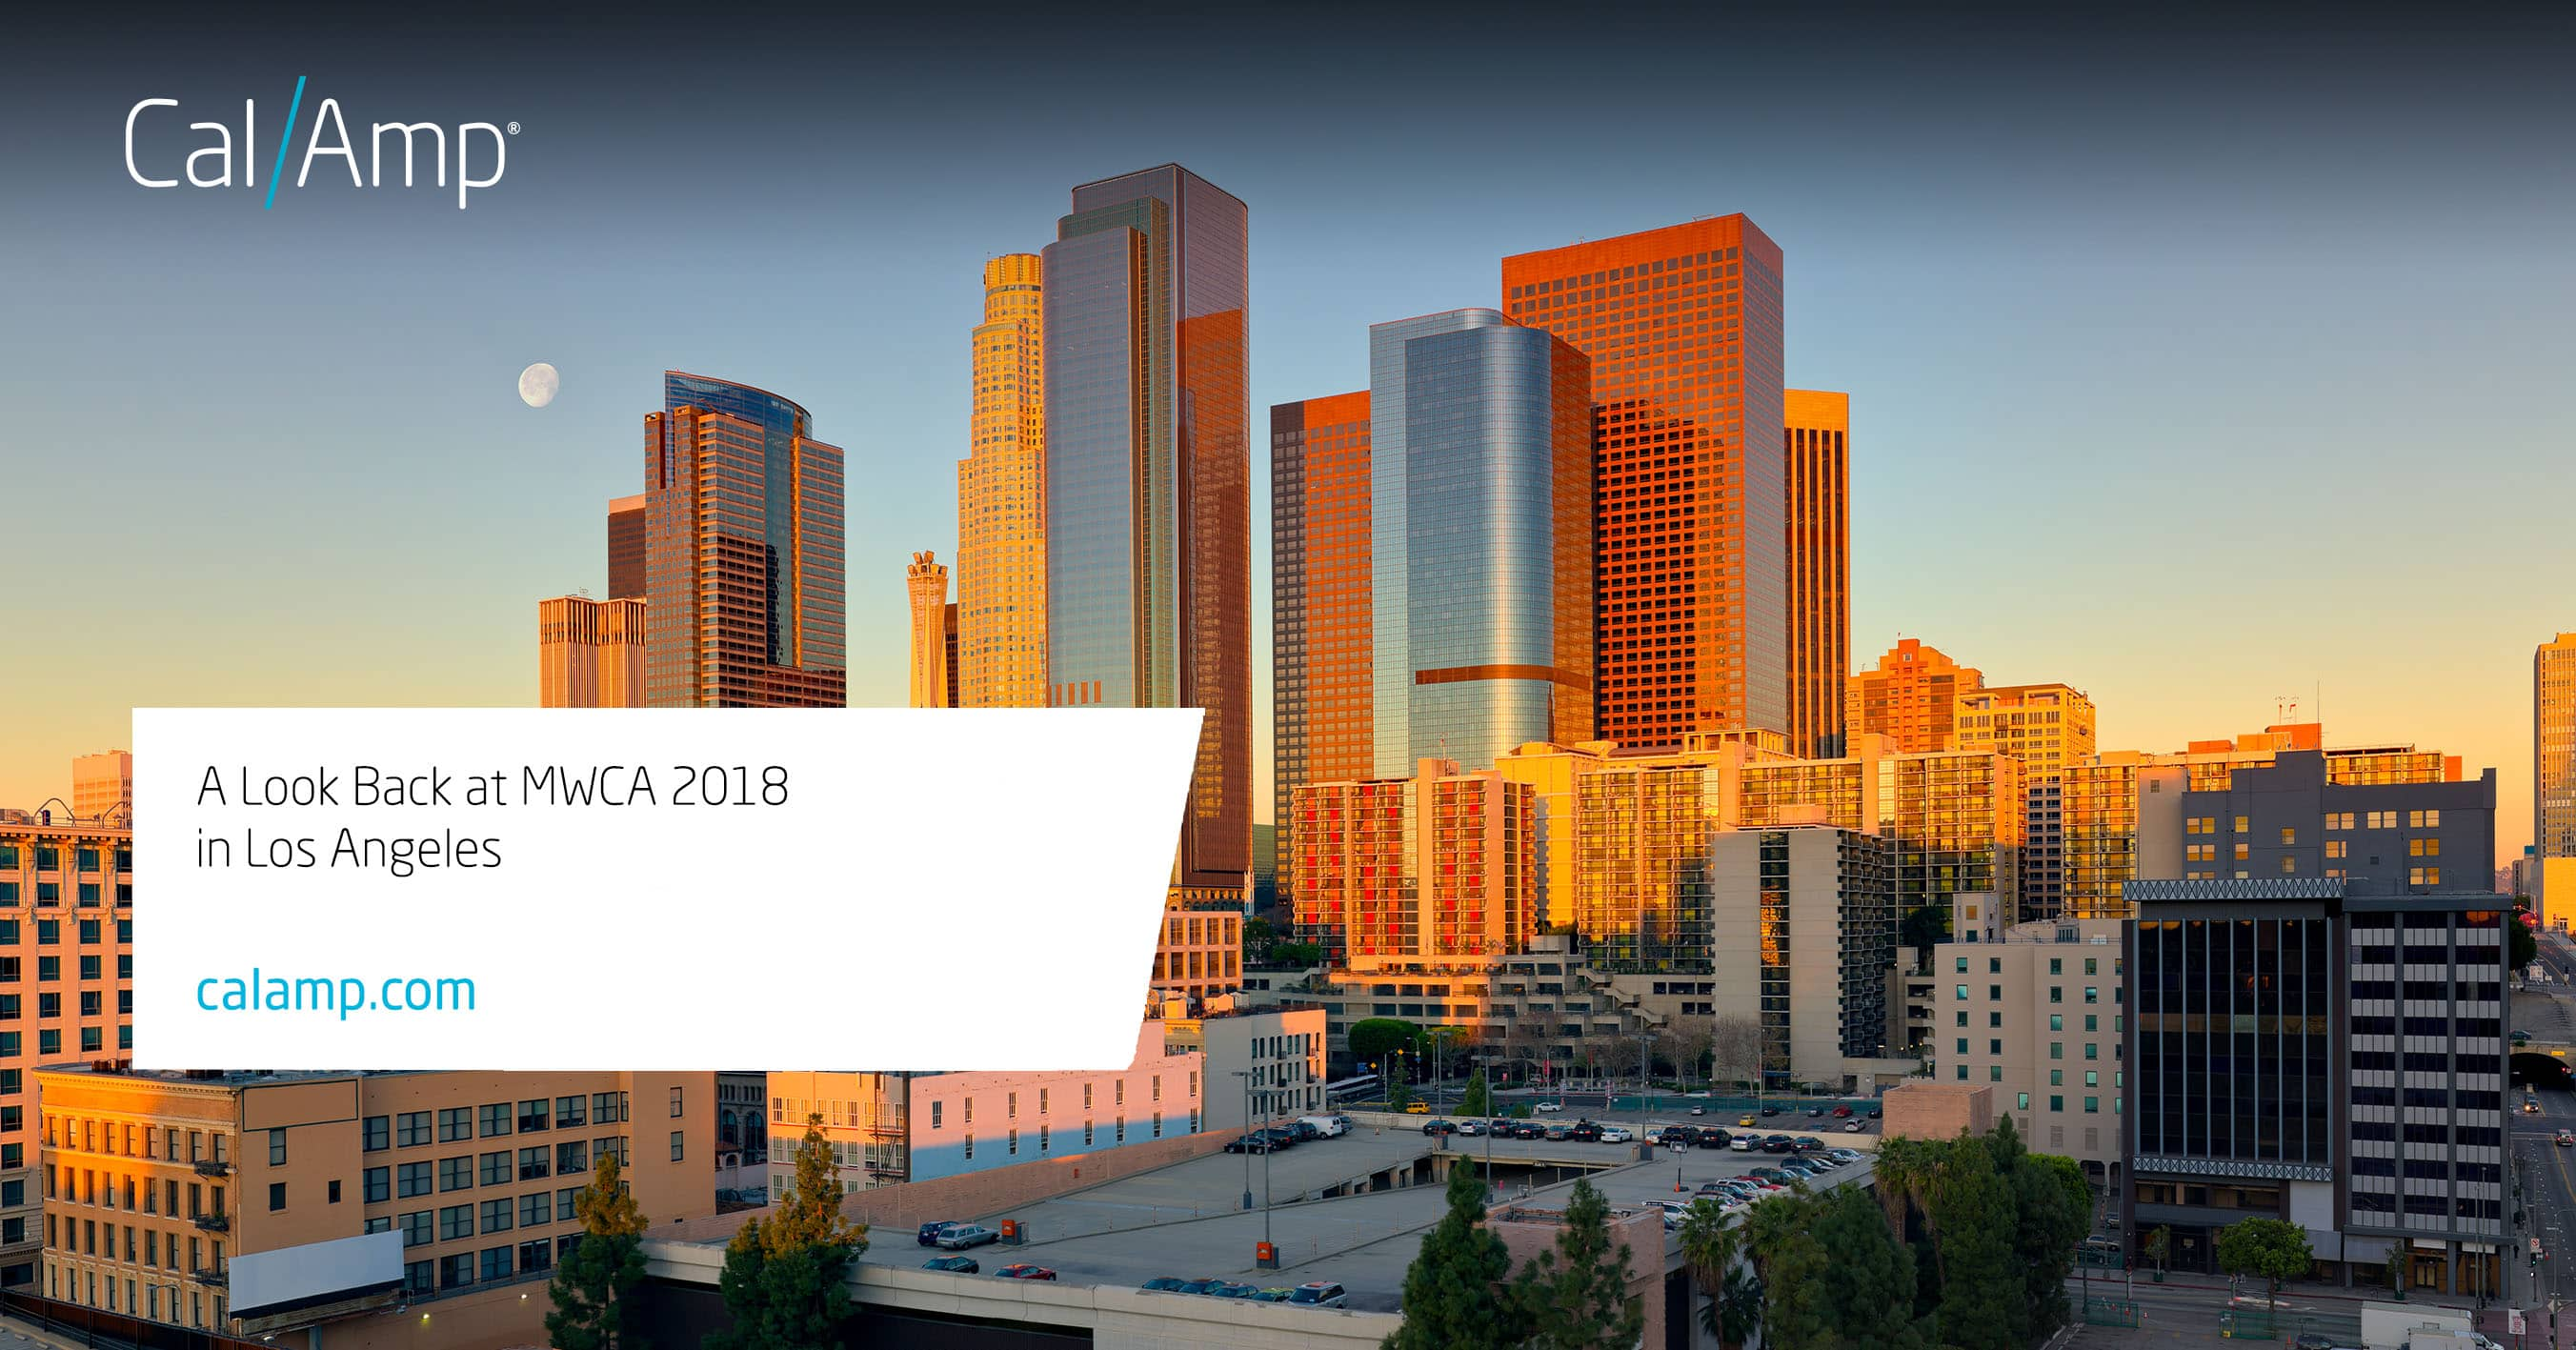 A Look Back at MWCA 2018 in Los Angeles